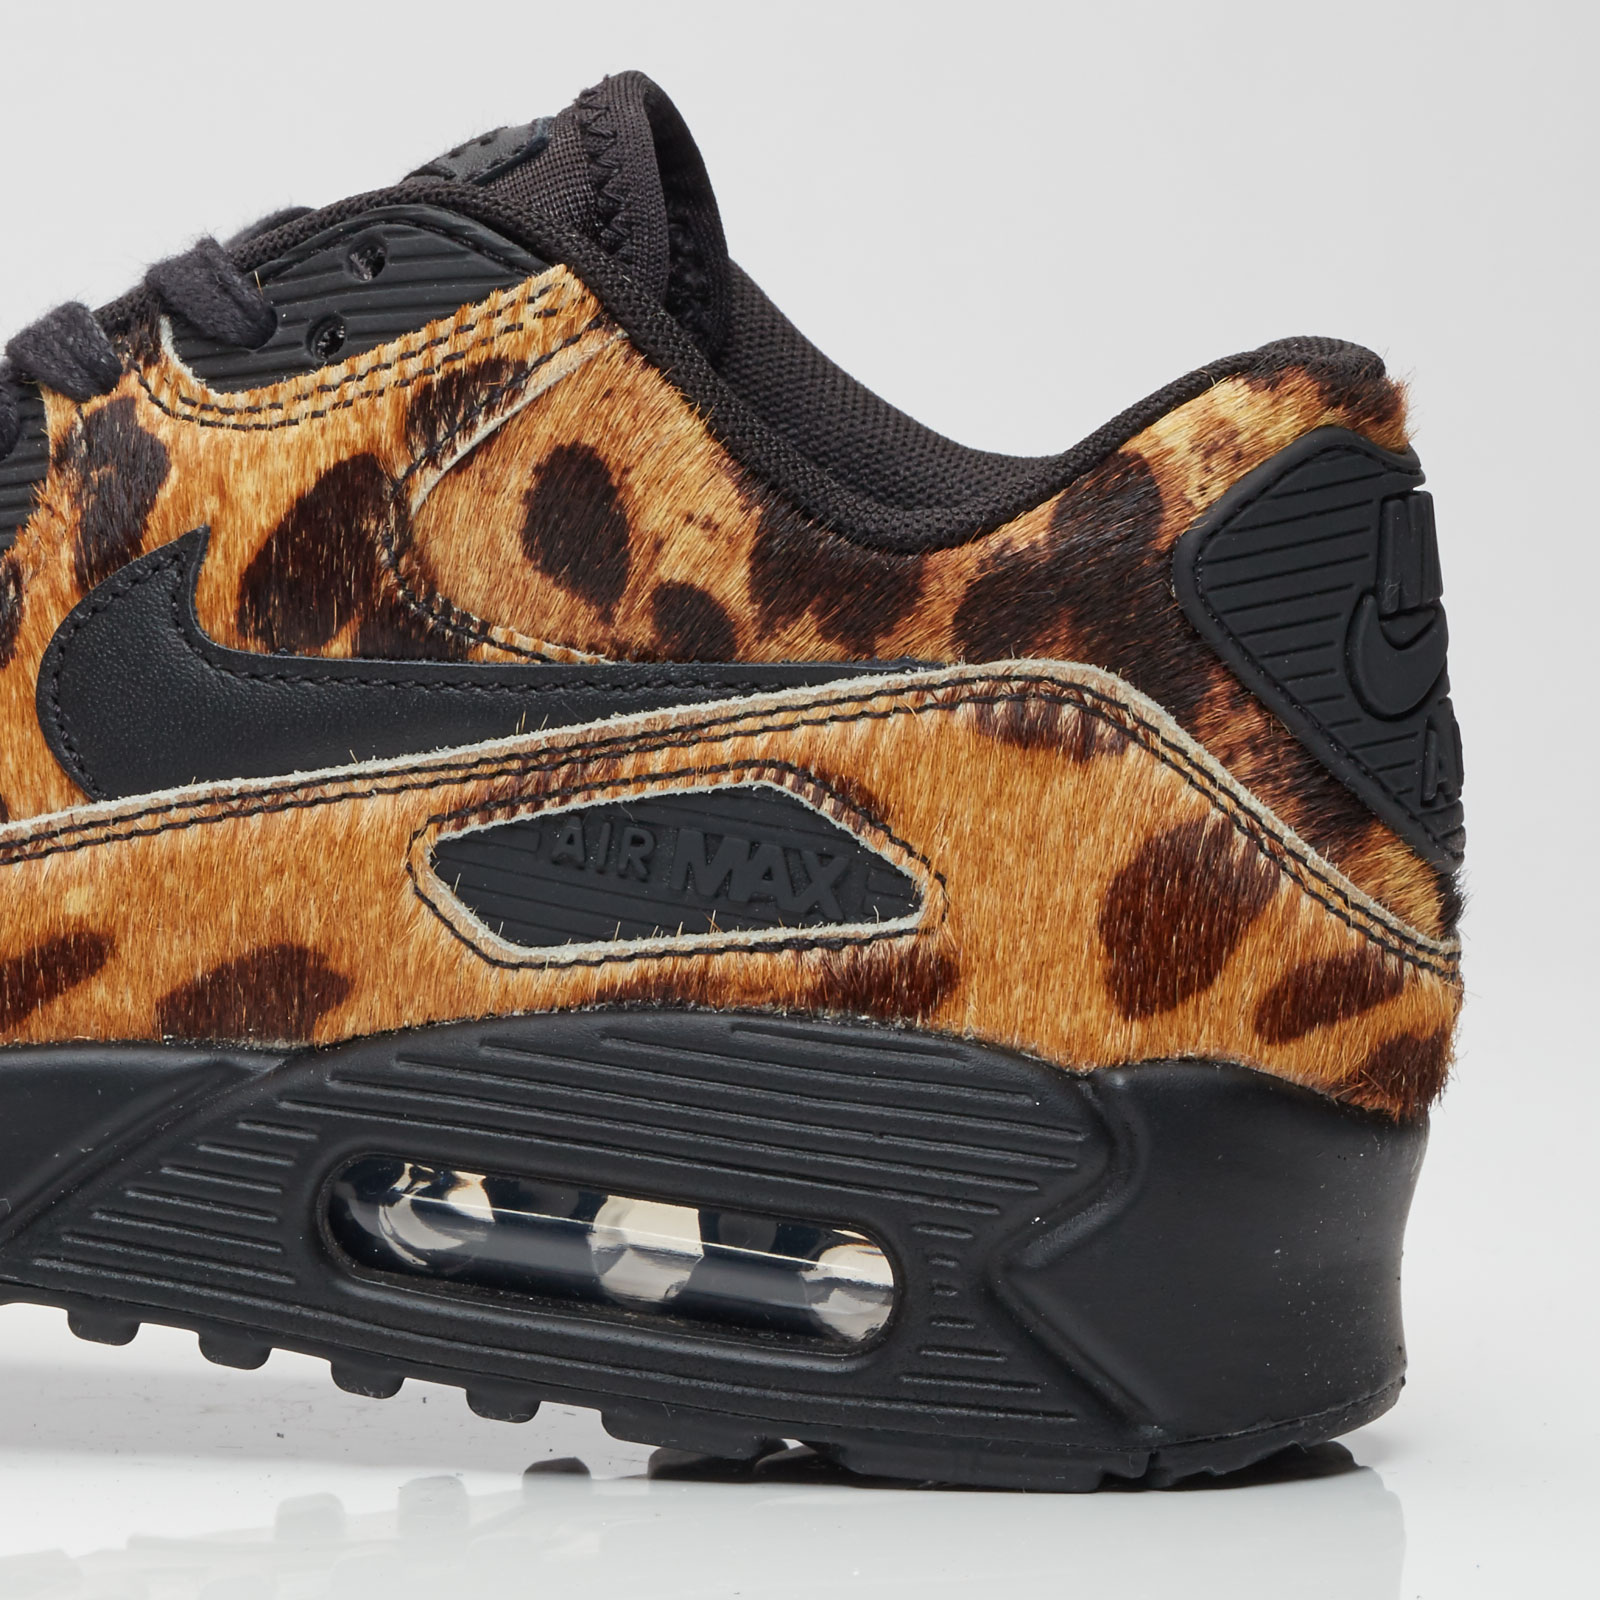 59bf8a4a537 Nike Wmns Air Max 90 Lx - 898512-002 - Sneakersnstuff